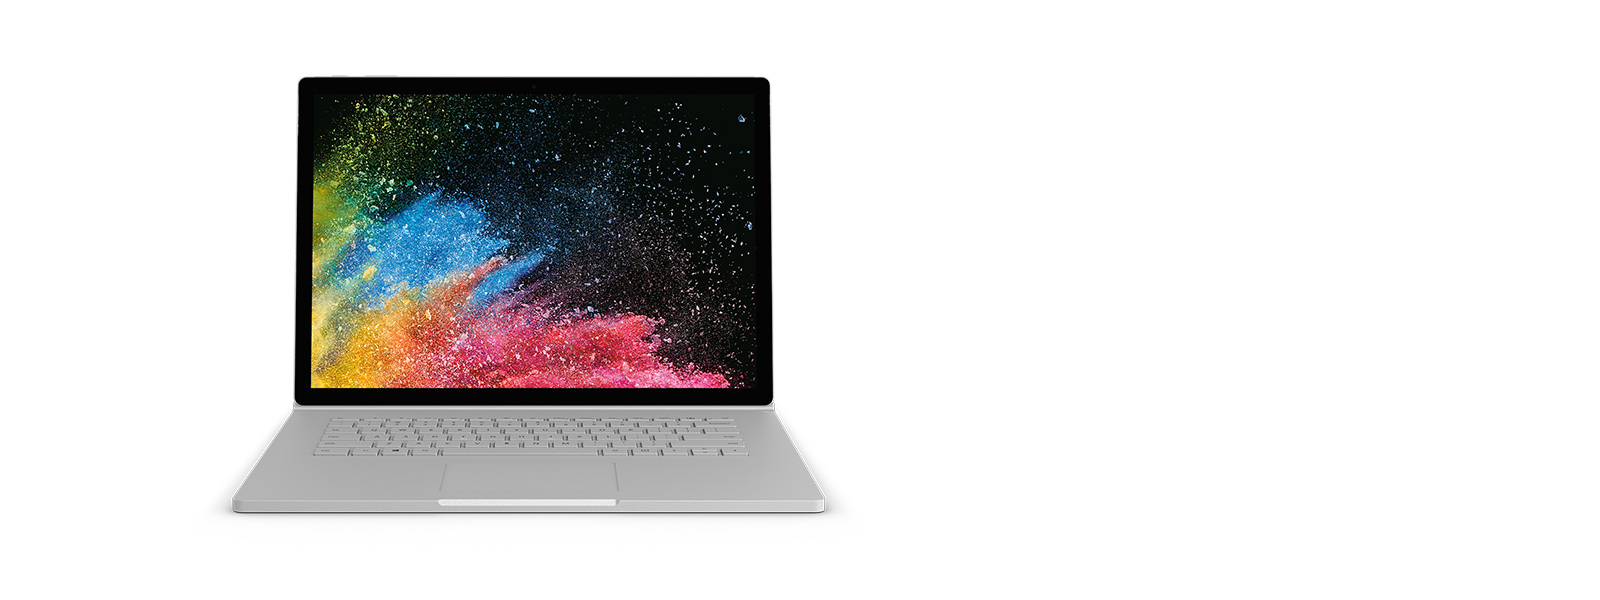 Surface Book 2 in Laptop Mode with screen shot.